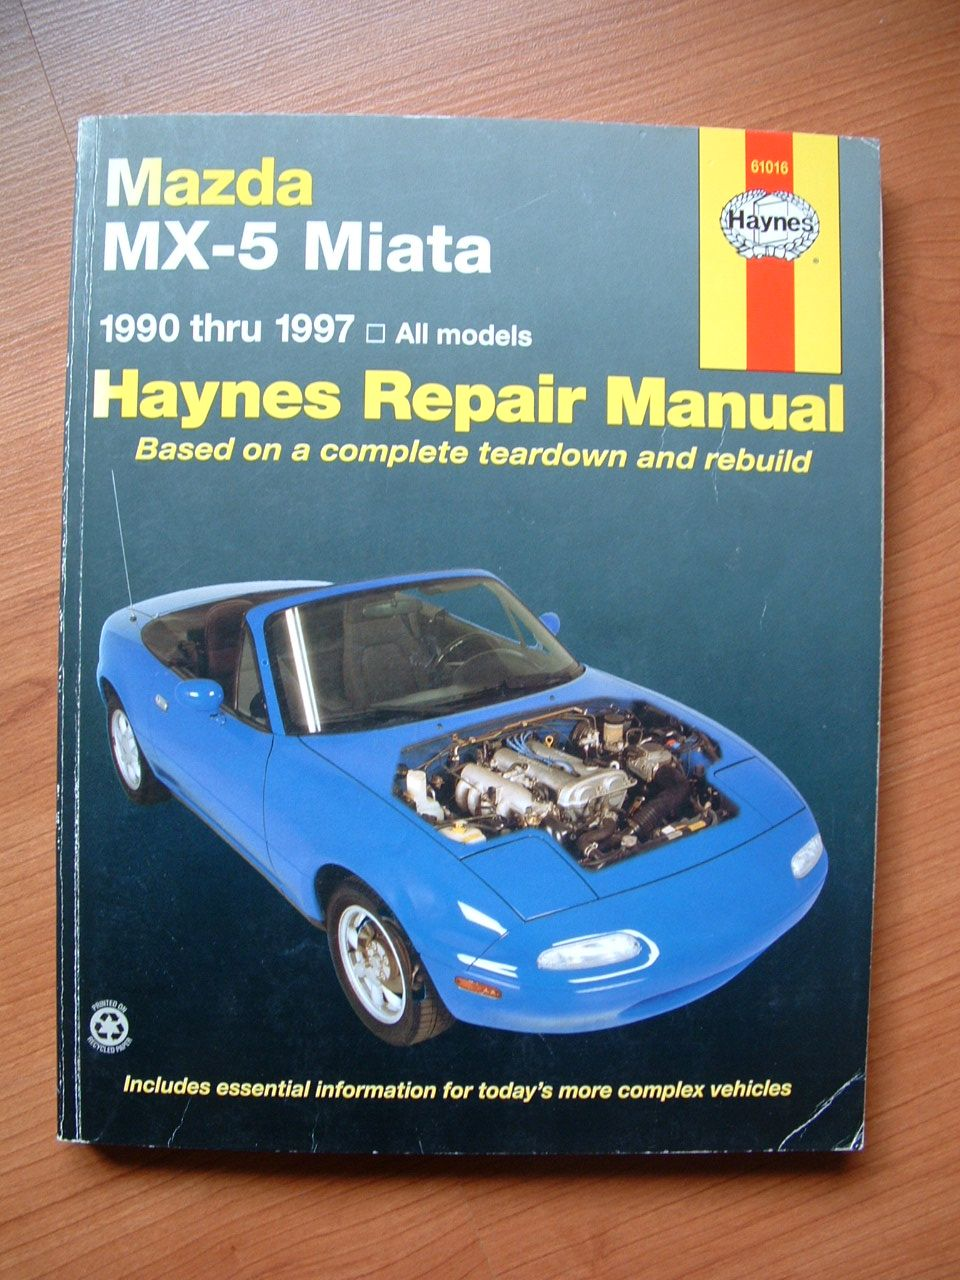 Miata Na Workshop Manual Mazda 1990 Fuse Box 2012 Audi A6